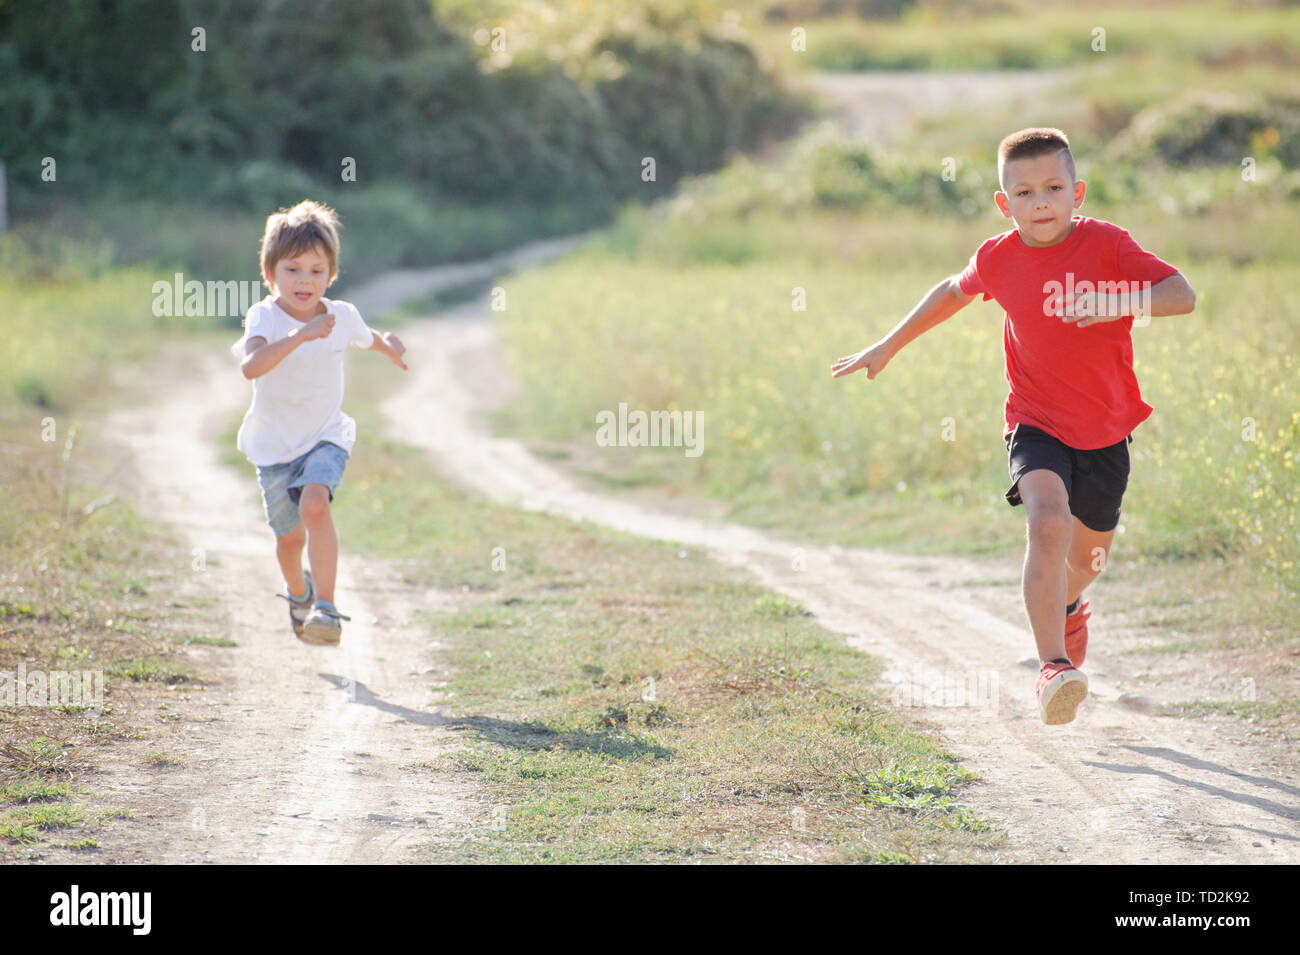 running pursuit two caucasian healthy sport kids boys running together  outdoor summer vacation activity Stock Photo - Alamy